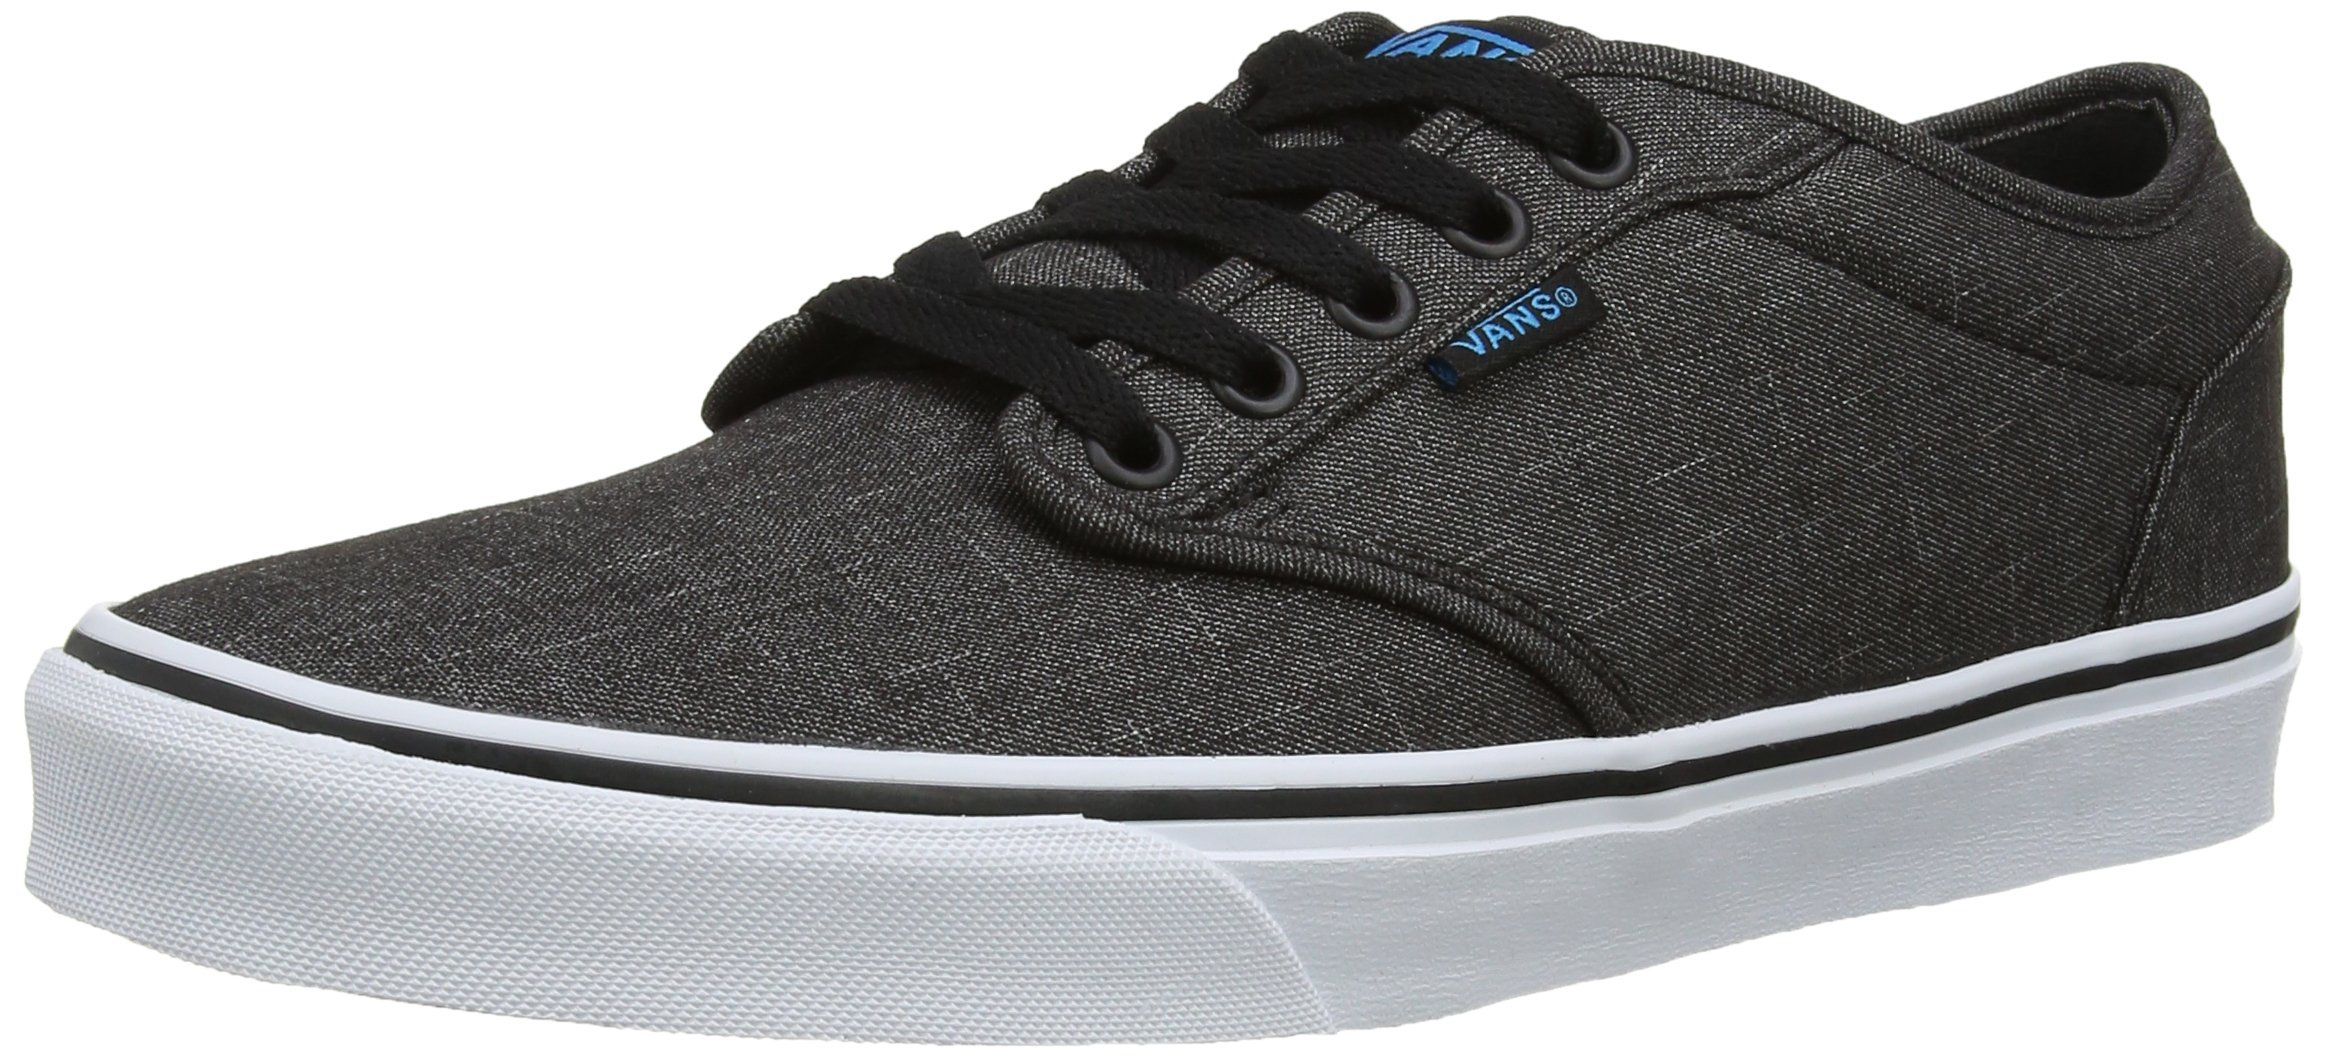 ca26ec6febbff5 Galleon - Vans Mens Atwood Textile Shoes Black Hawaiian Ocean Size 10